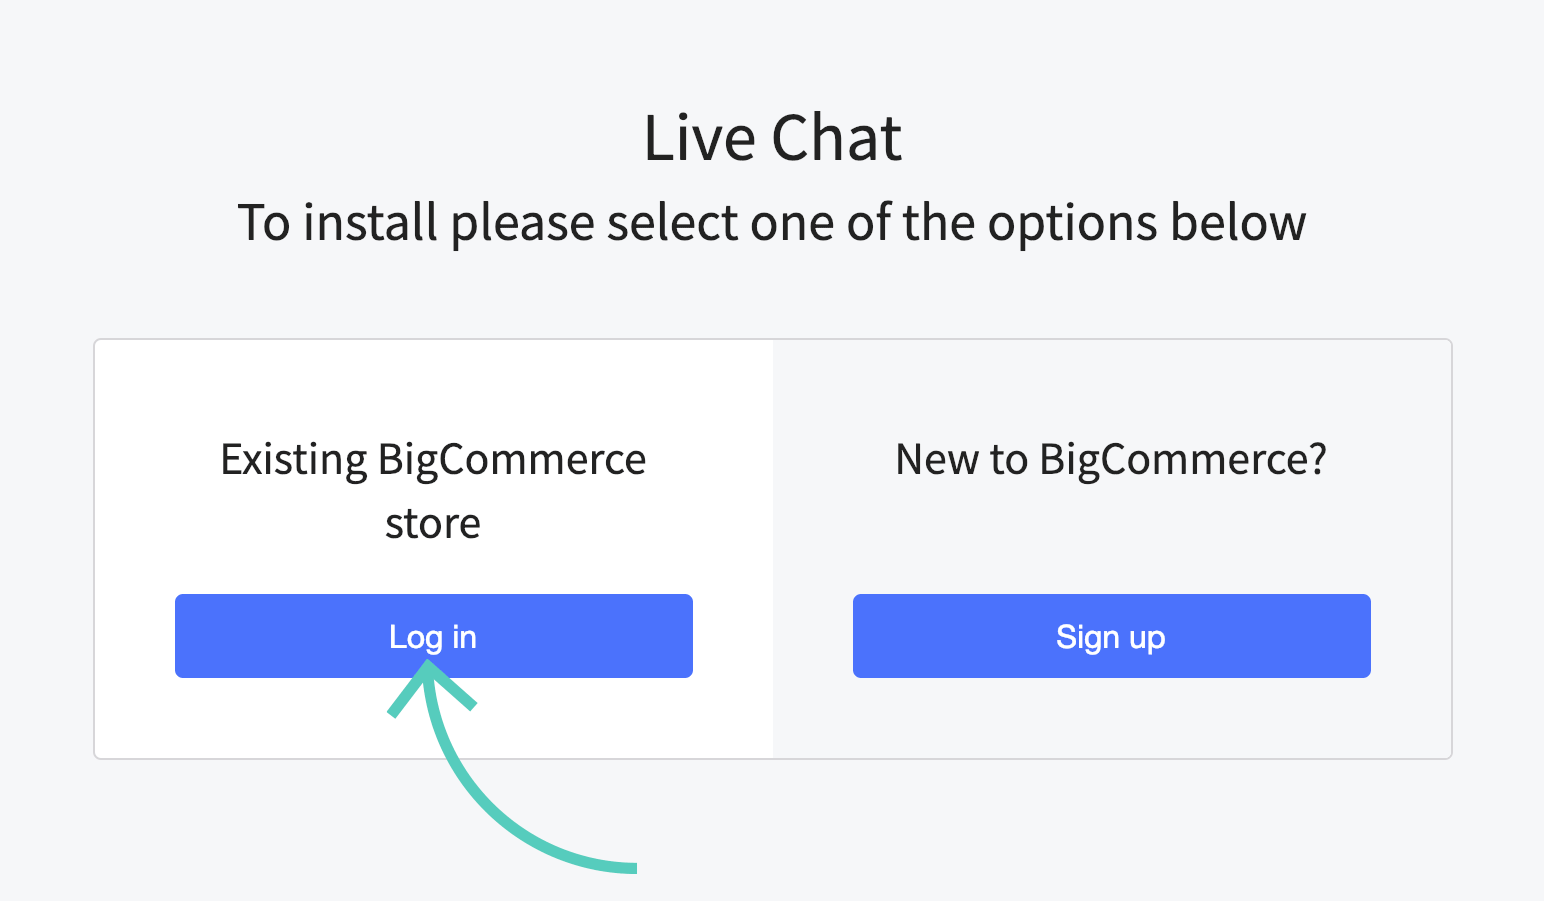 Log in to existing BigCommerce store